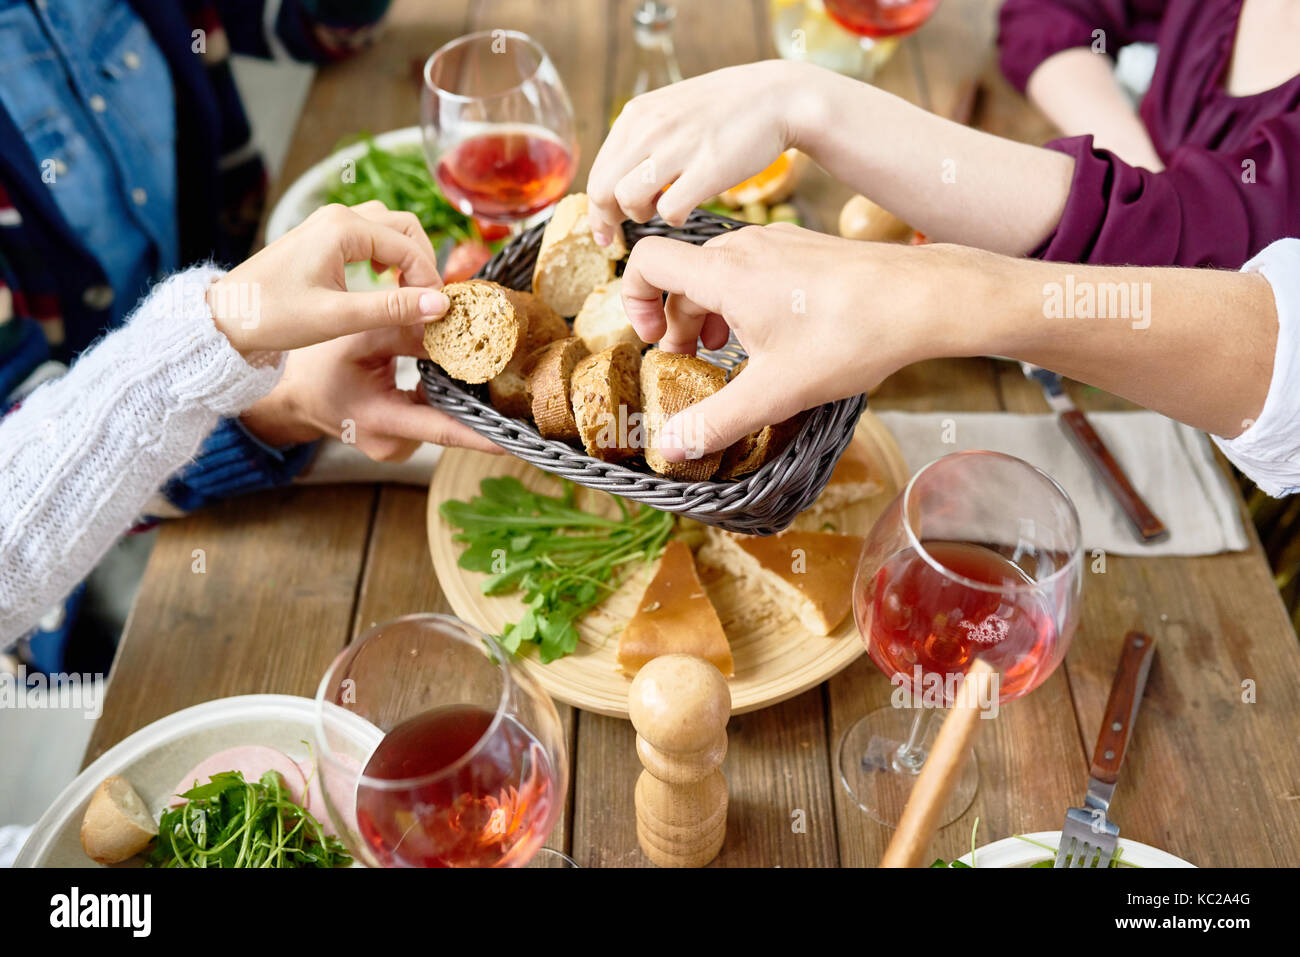 Closeup of unrecognizable people passing bread basket around at festive dinner table - Stock Image